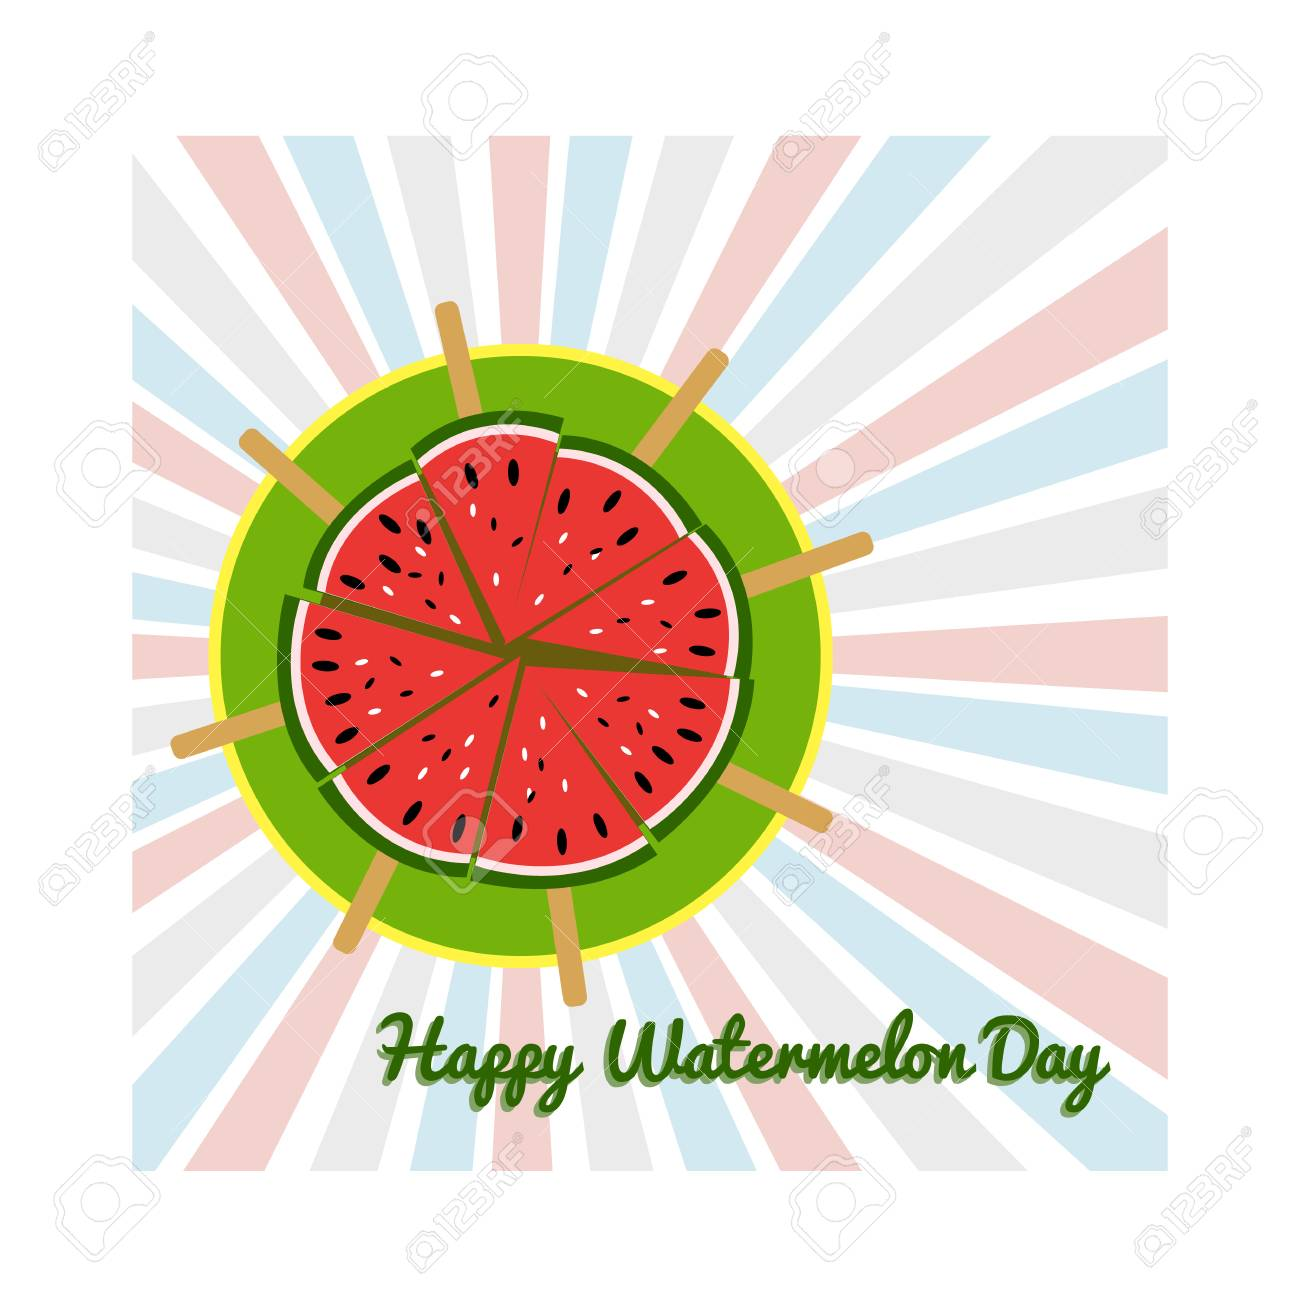 Concept for the National Watermelon Day, greeting card with watermelon sliced slices on a plate - 102394924